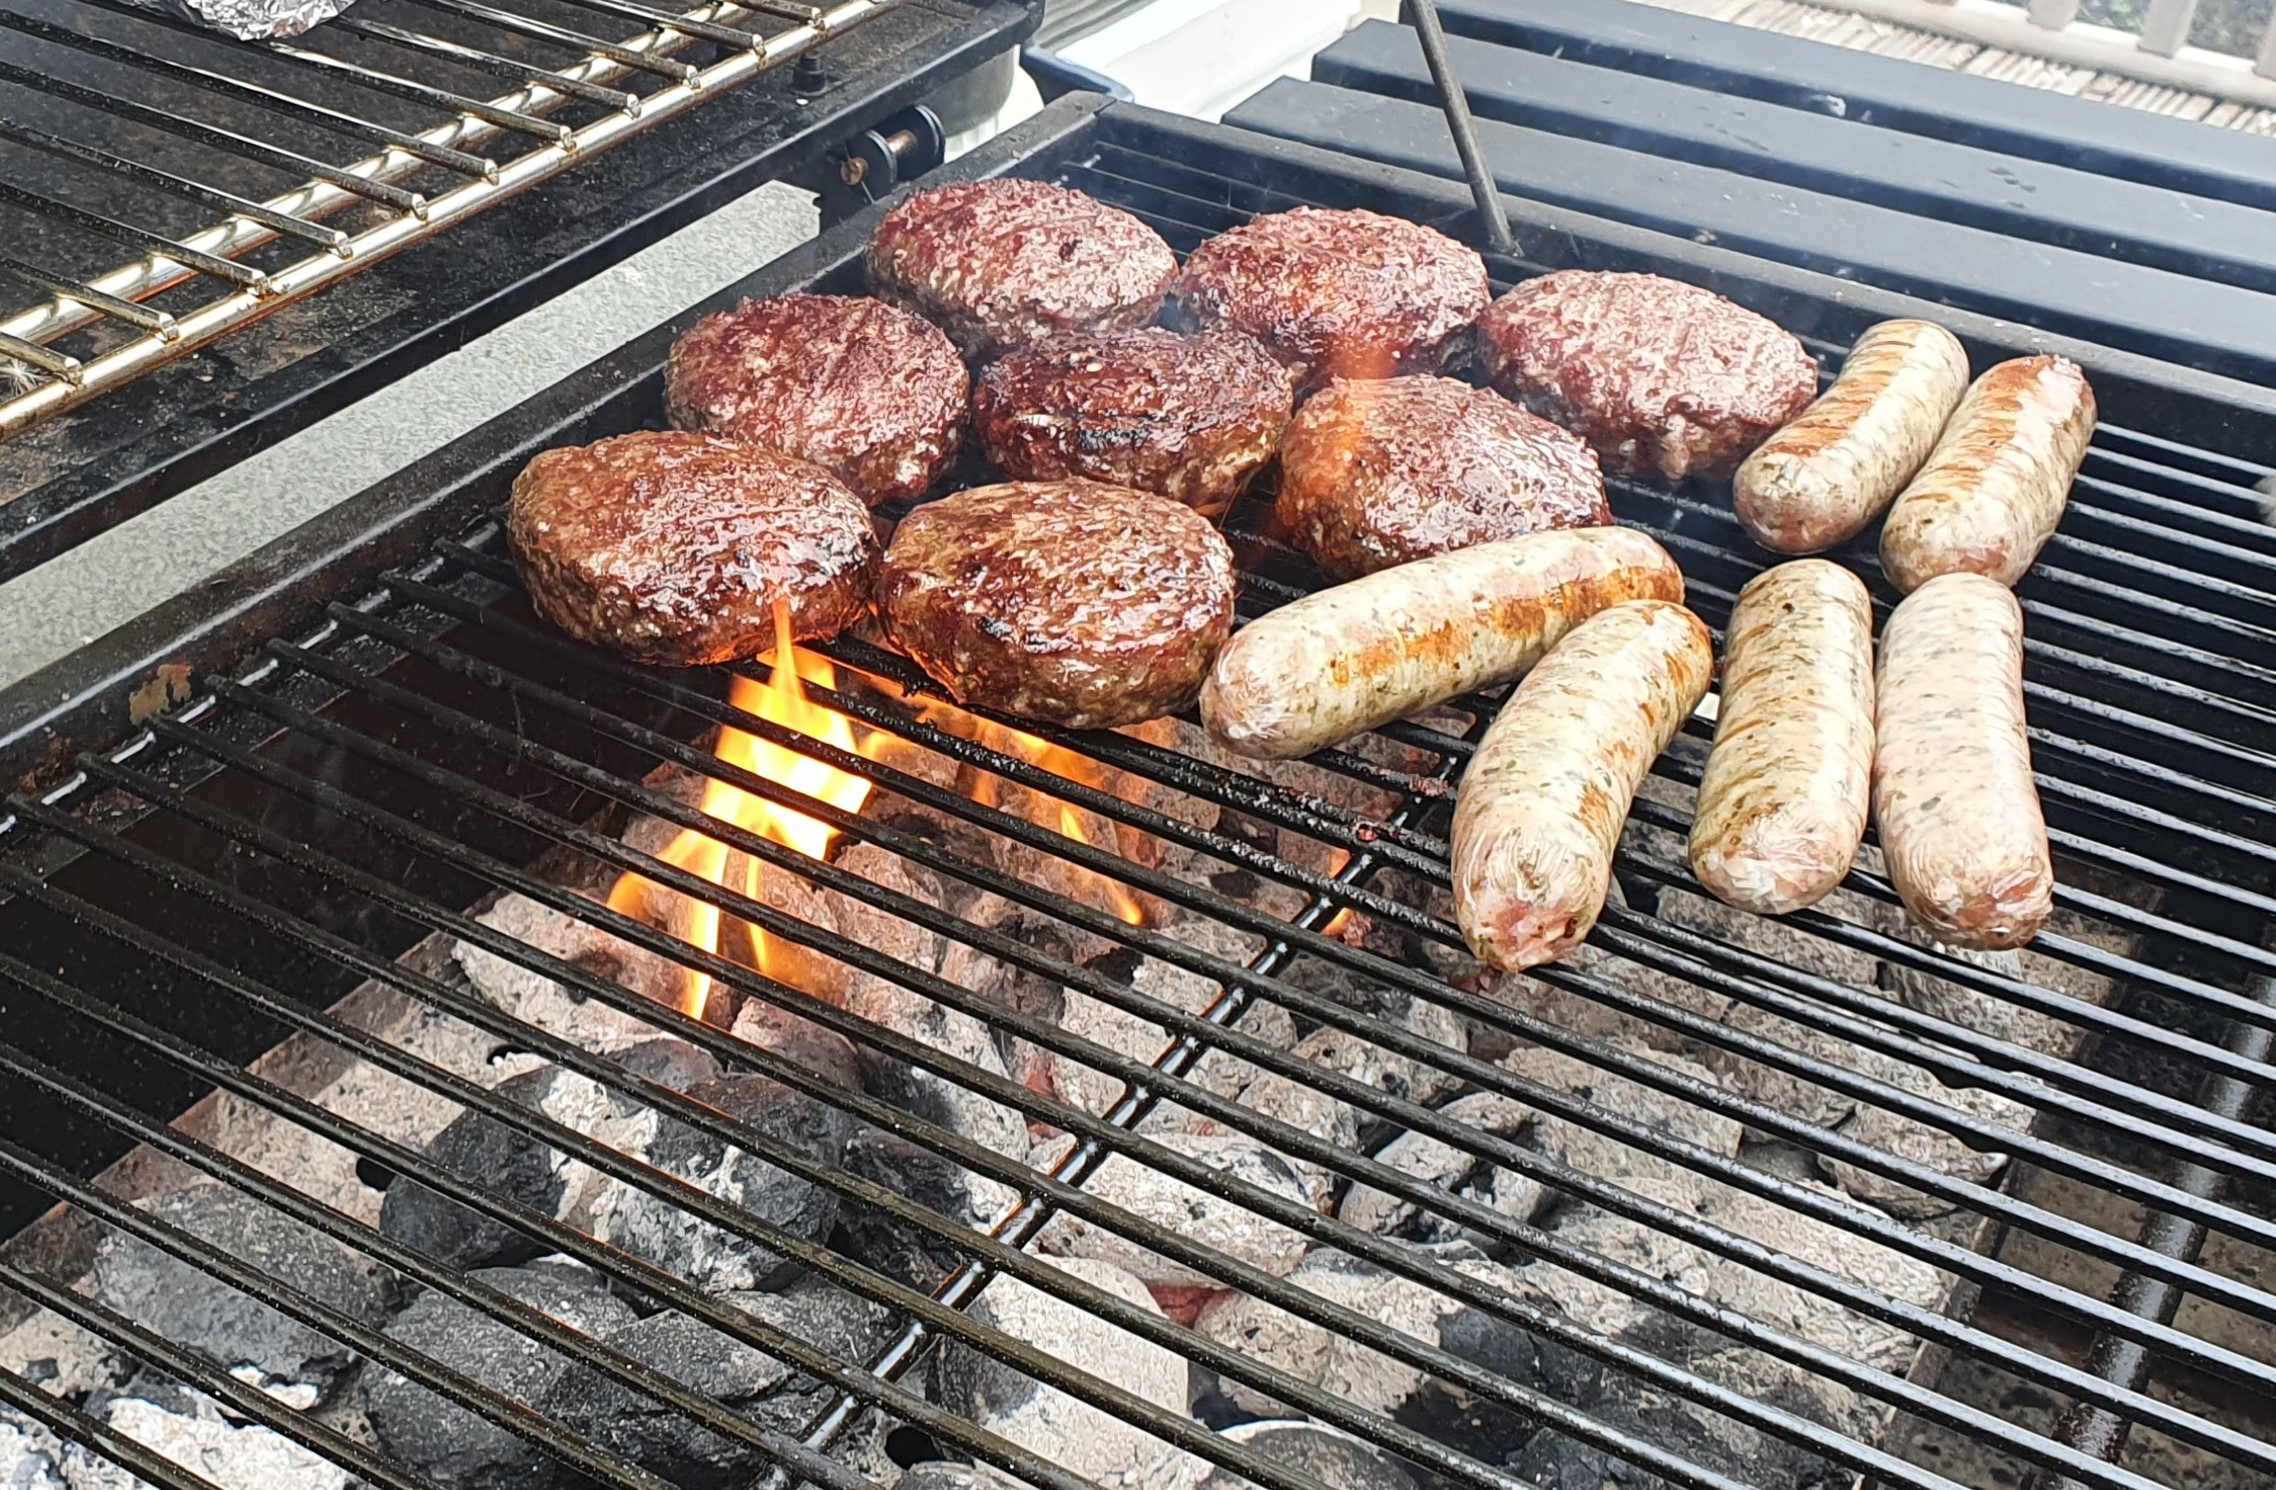 sausages and burgers grilling on a barbecue